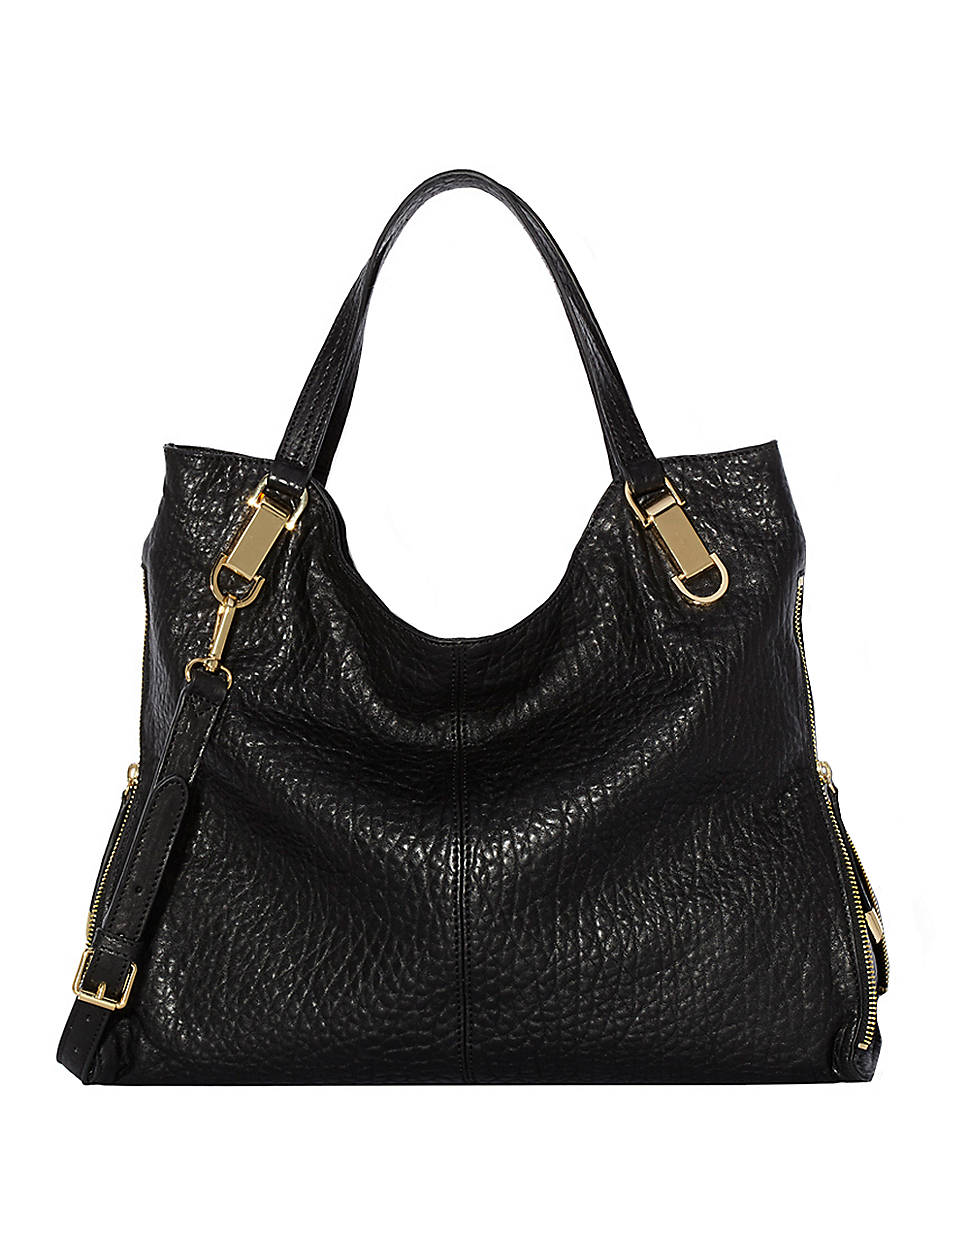 Vince Camuto Riley Leather Tote Bag In Black Lyst